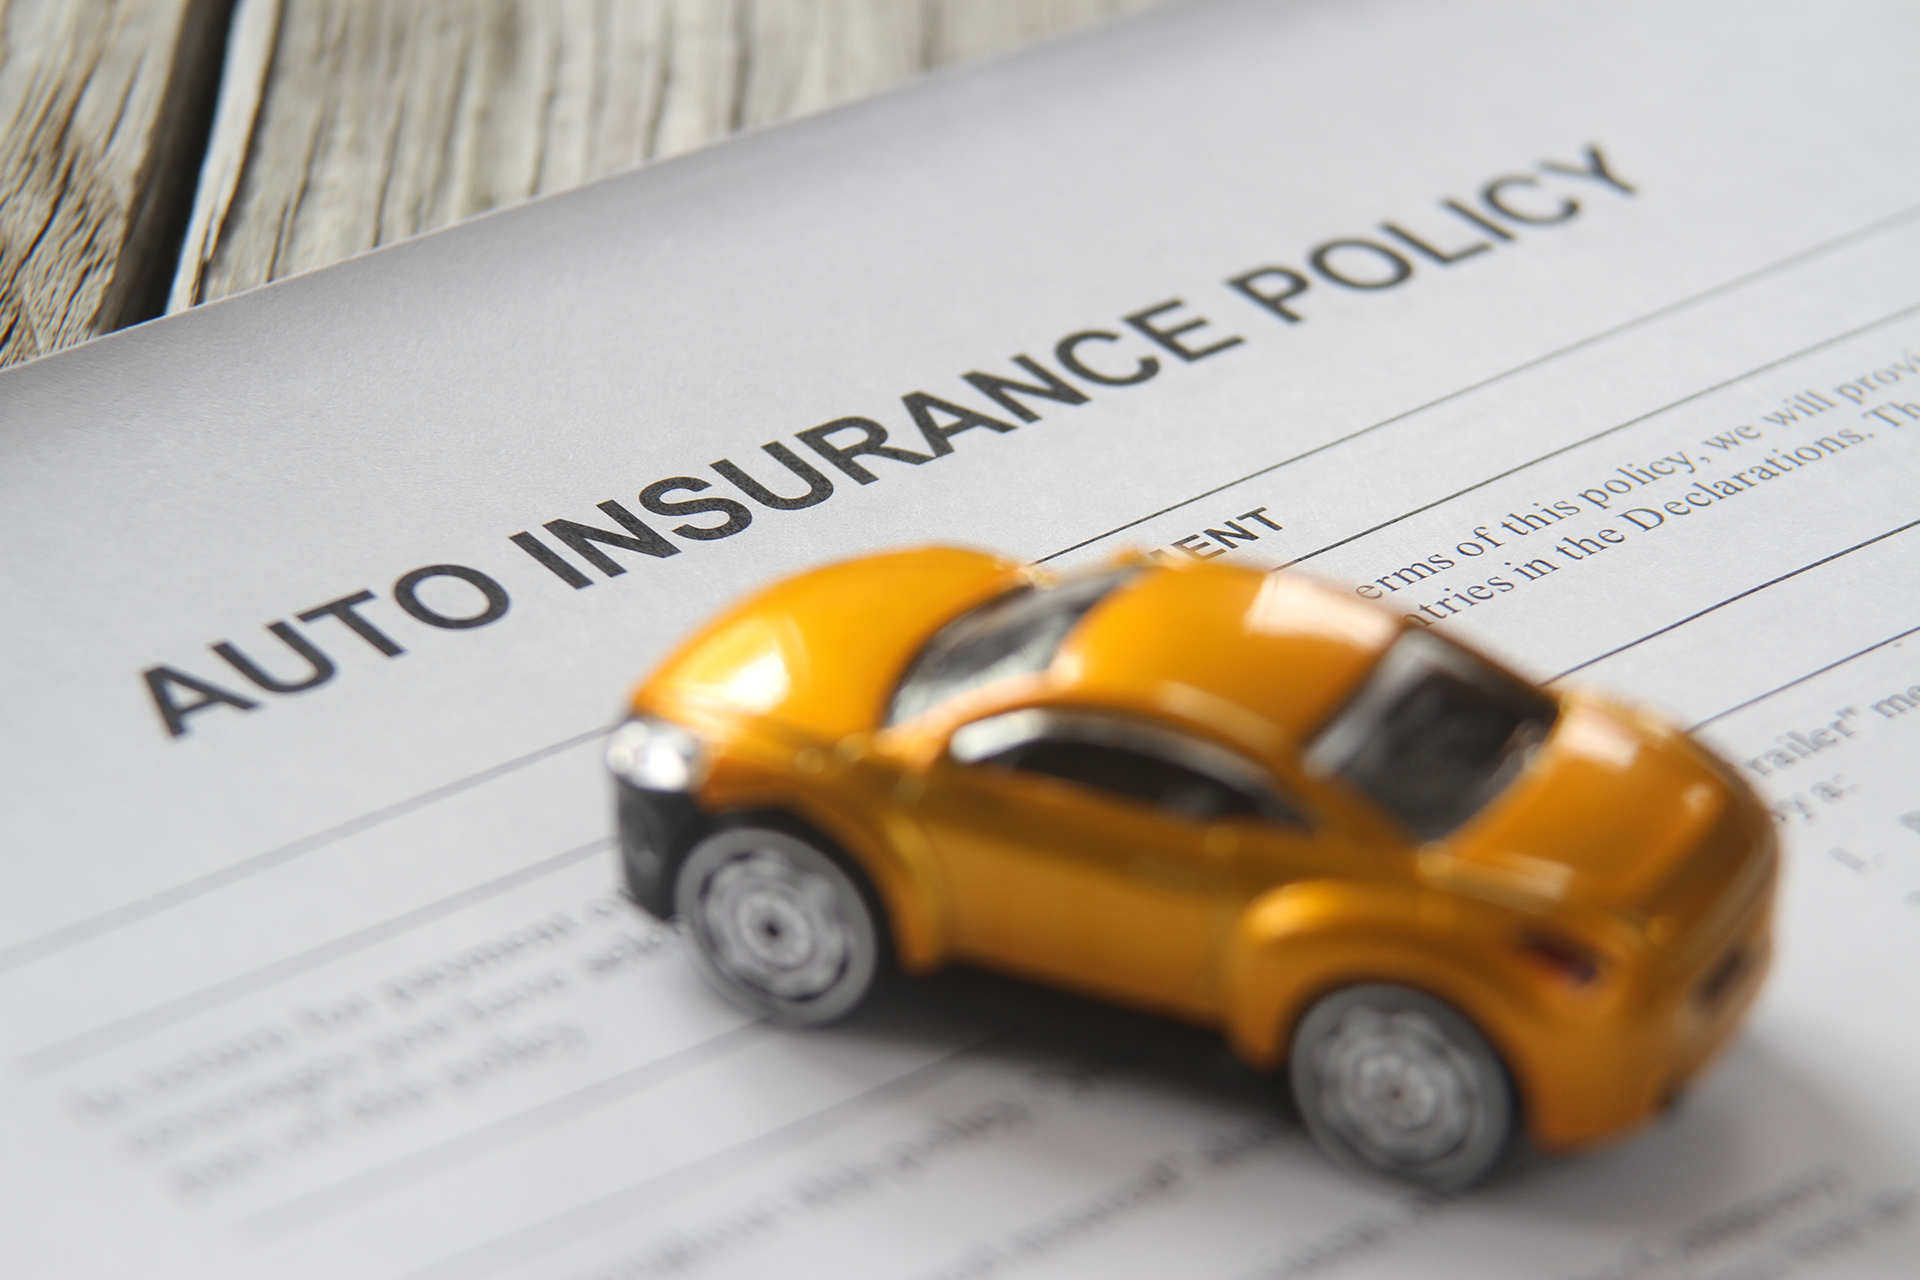 Free Insurance Finance And Money Stock Images And Photos